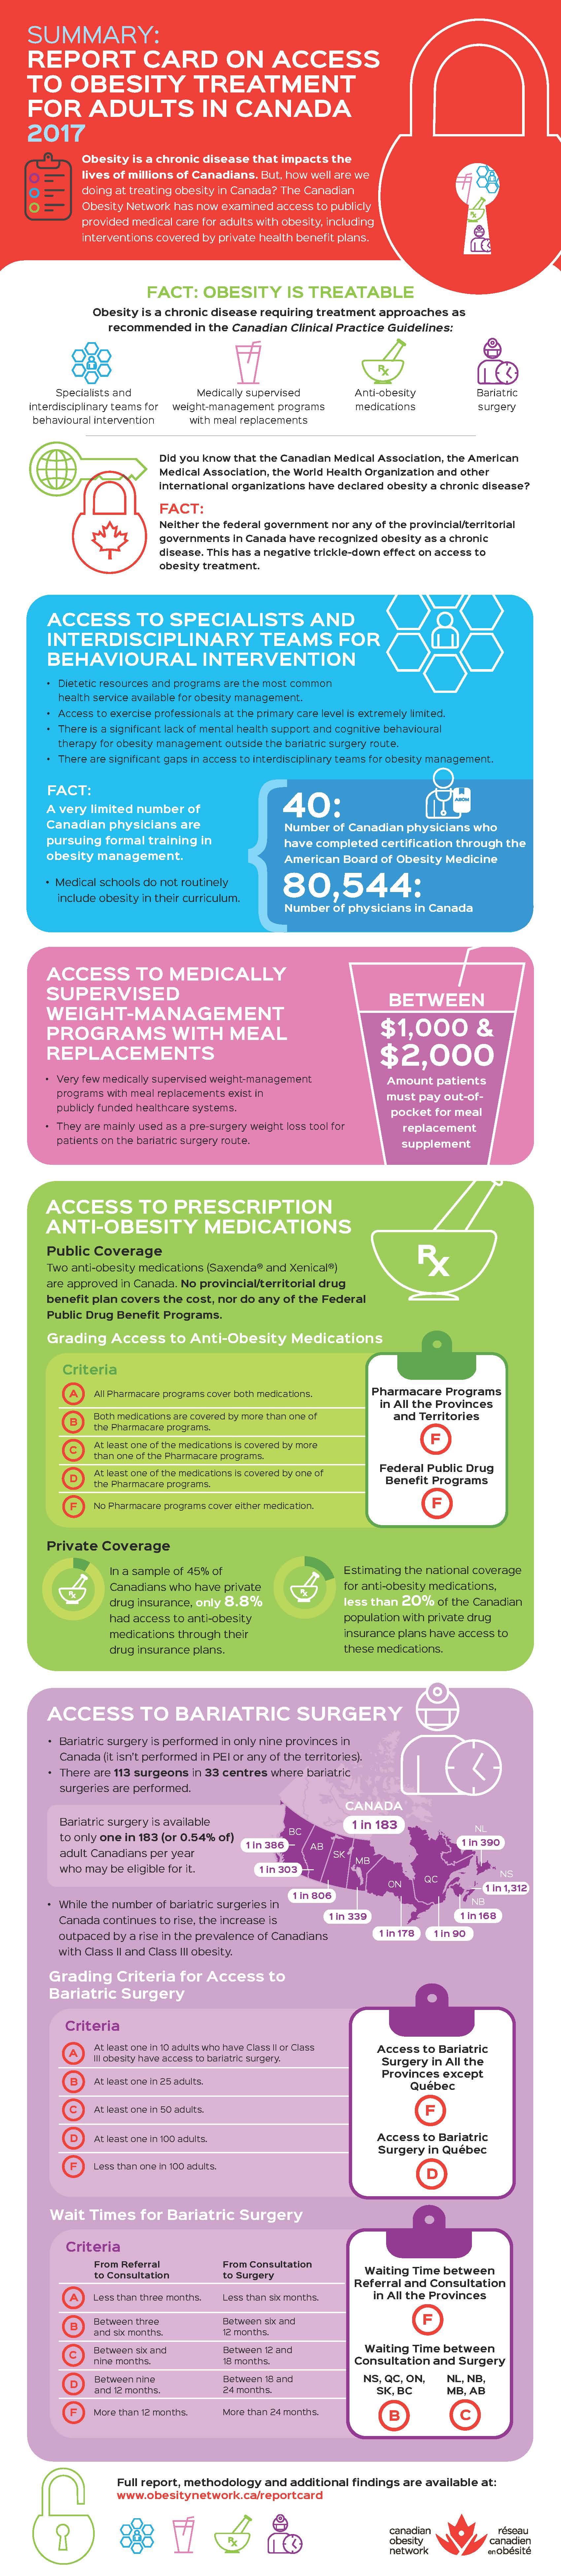 Report Card on Access to Obesity Treatment for Adults in Canada 2017